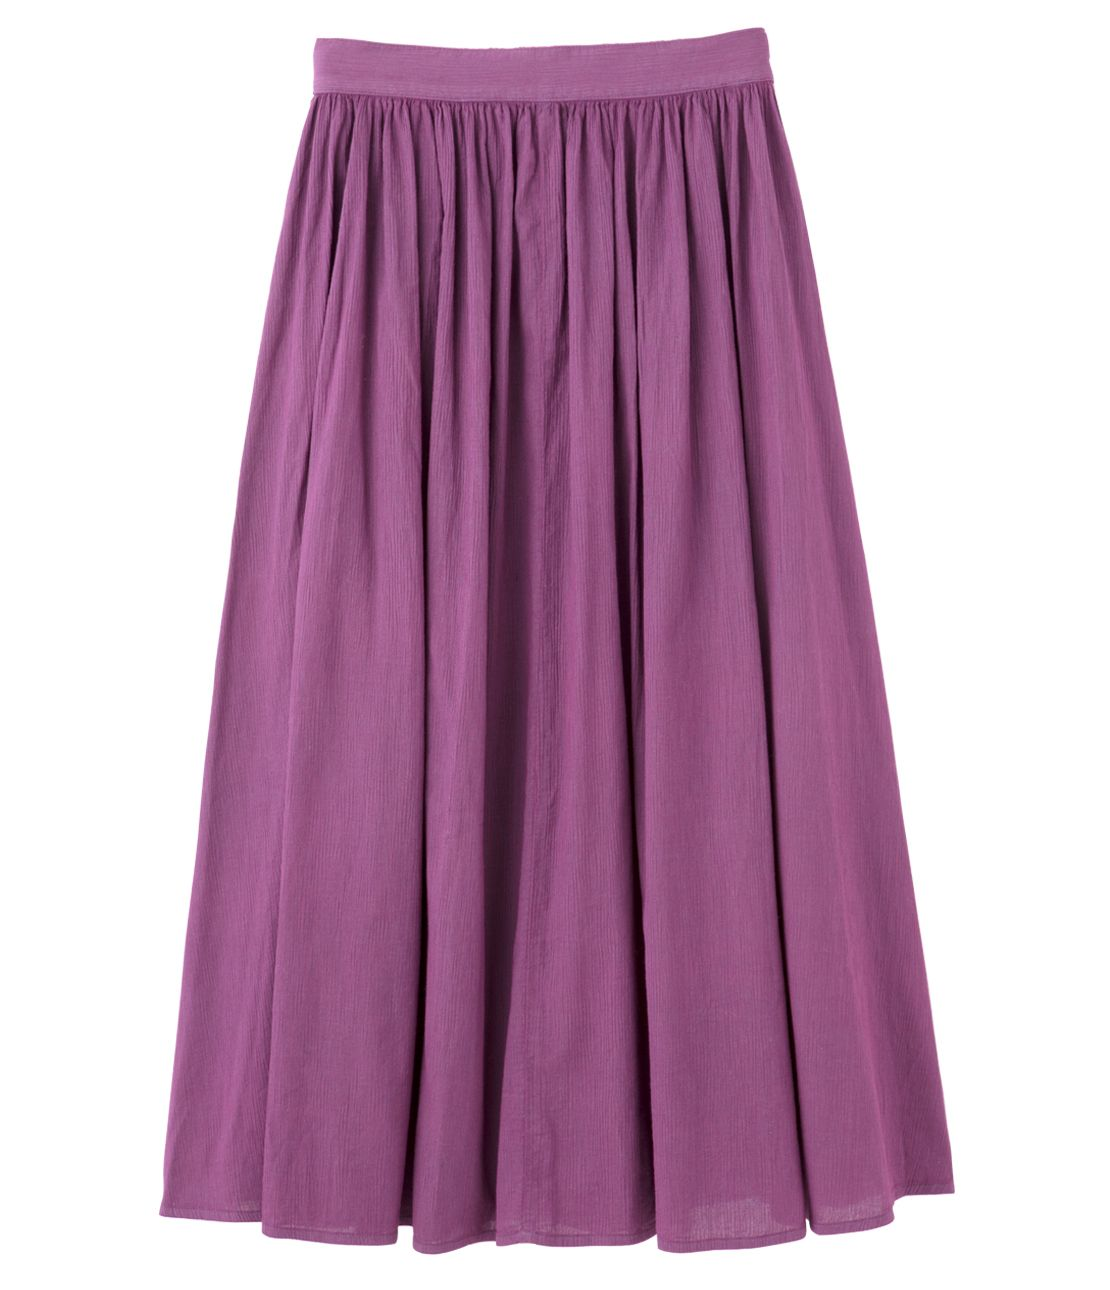 HARIESTER crepe Gathered maxi skirt